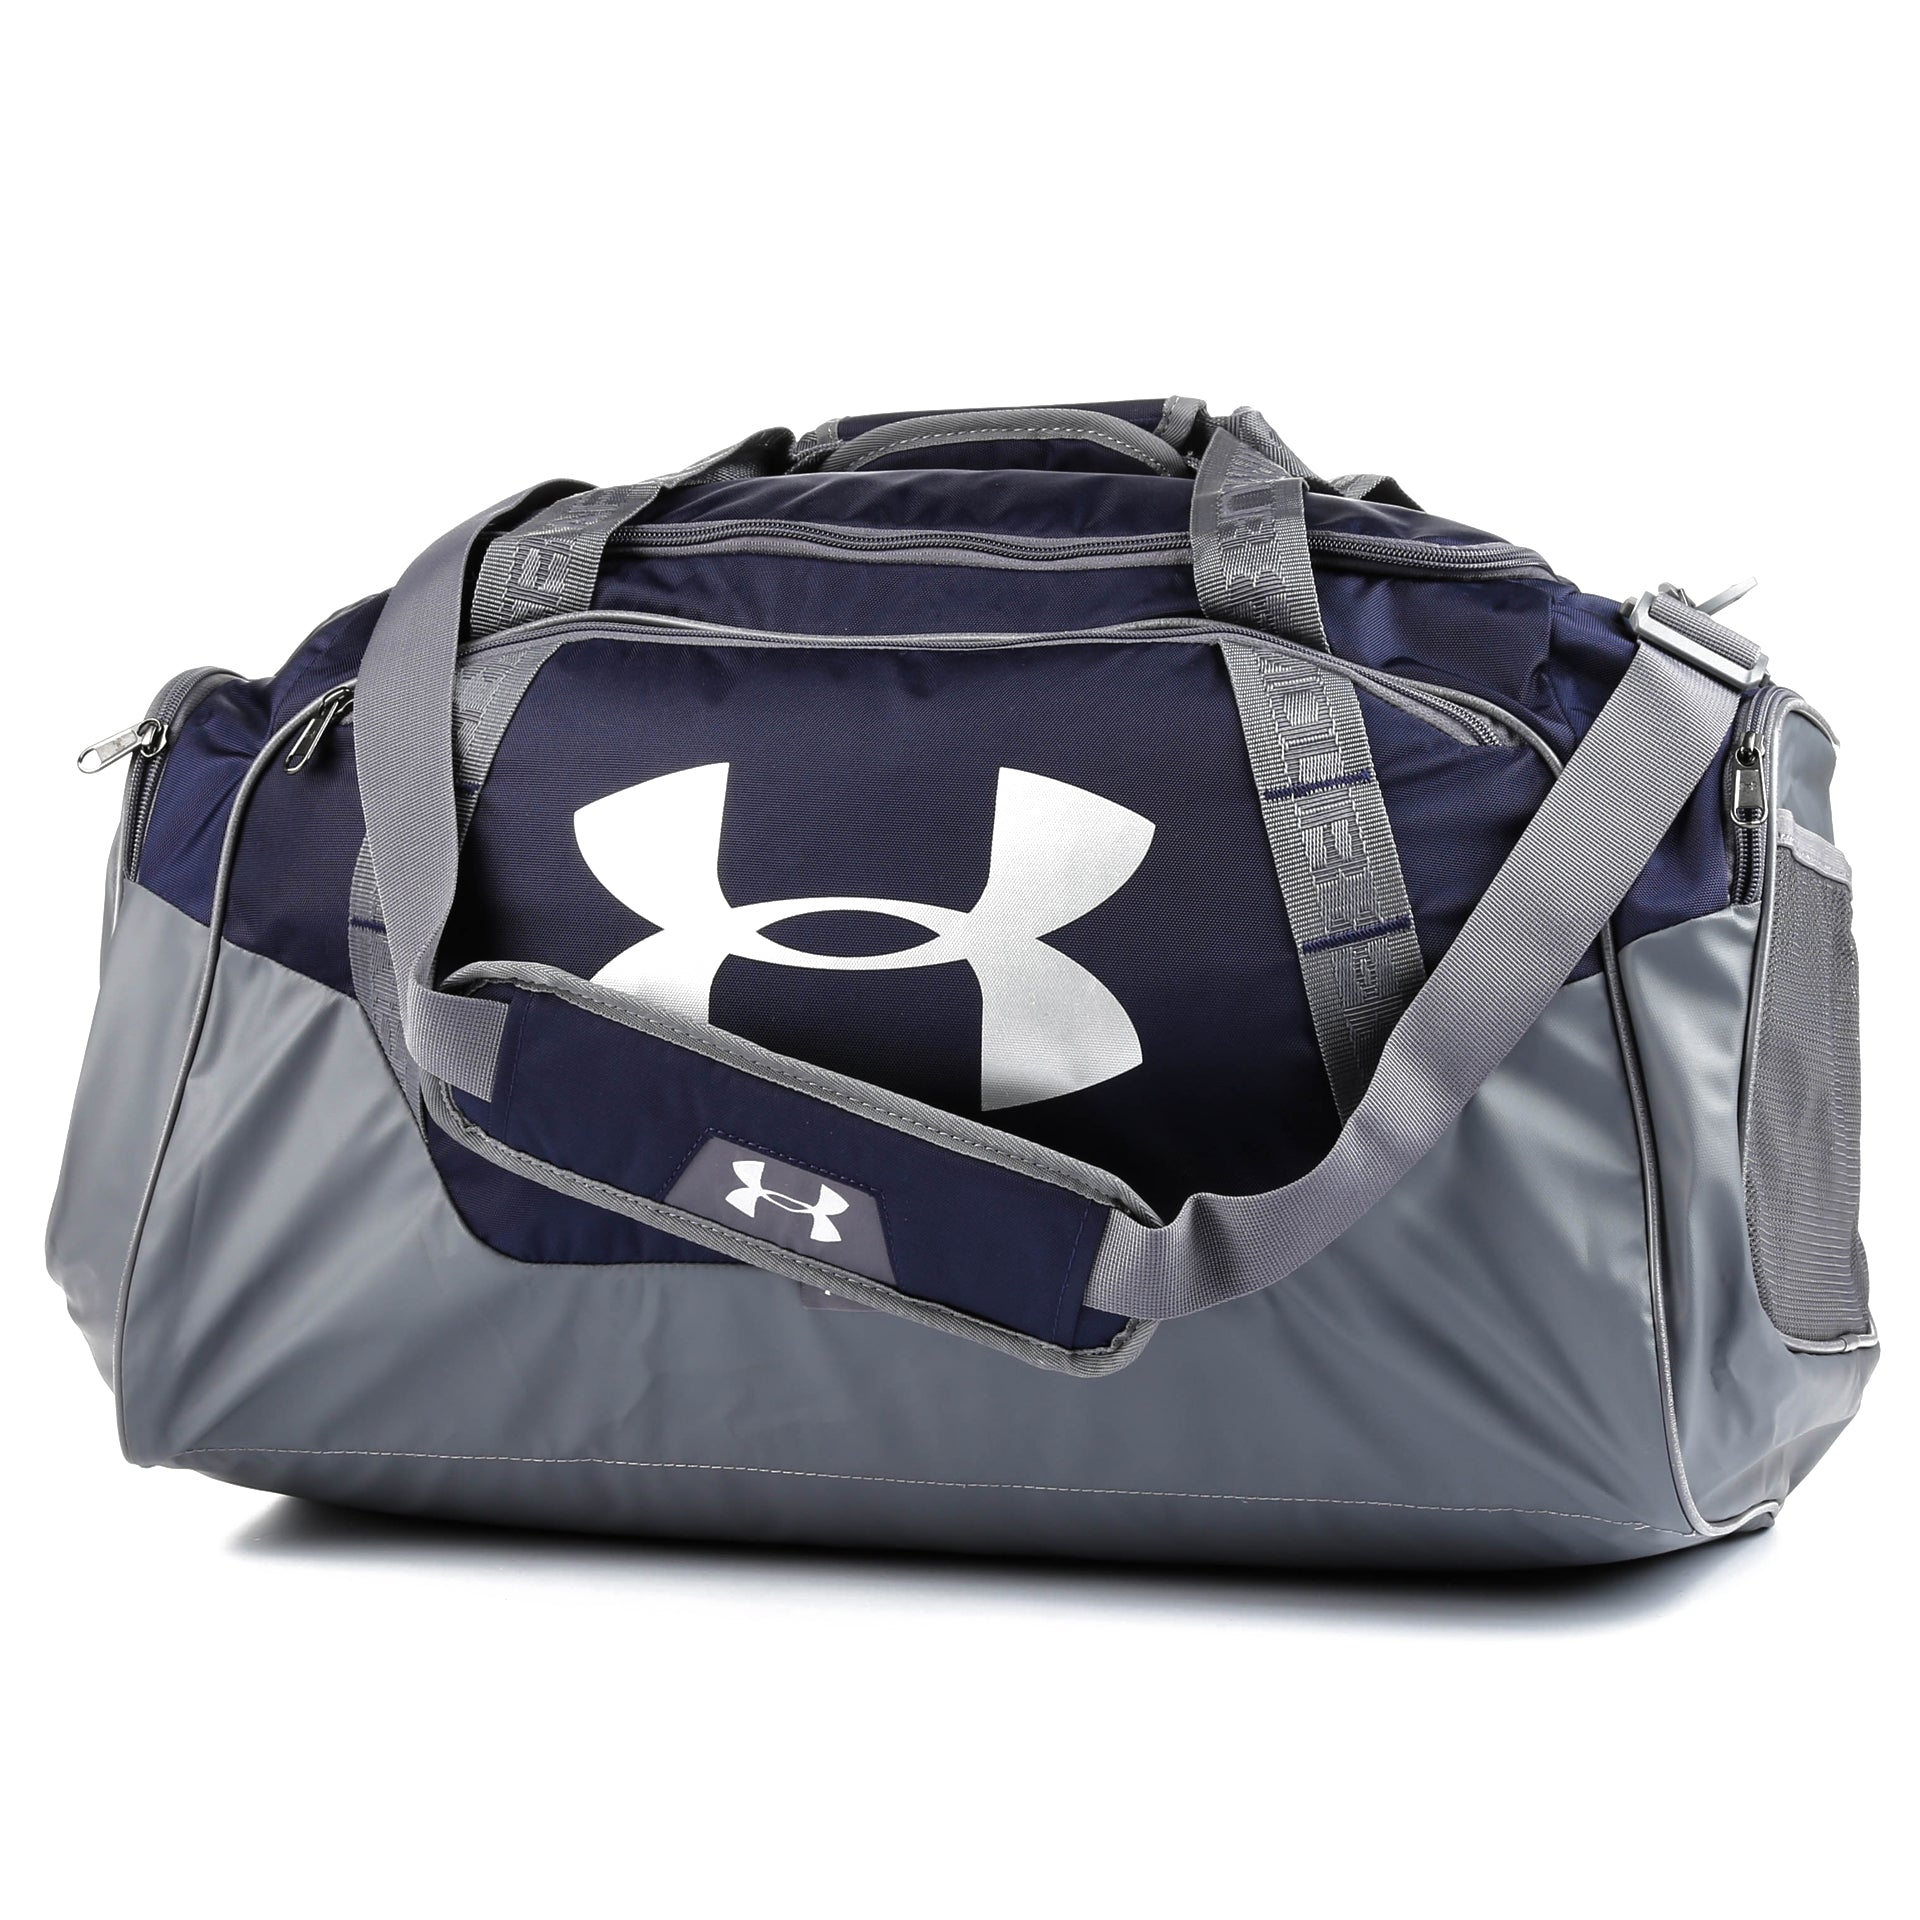 8f29128a3 Under Armour Undeniable 3.0 Medium Duffle bag - Midnight Navy / Graphite